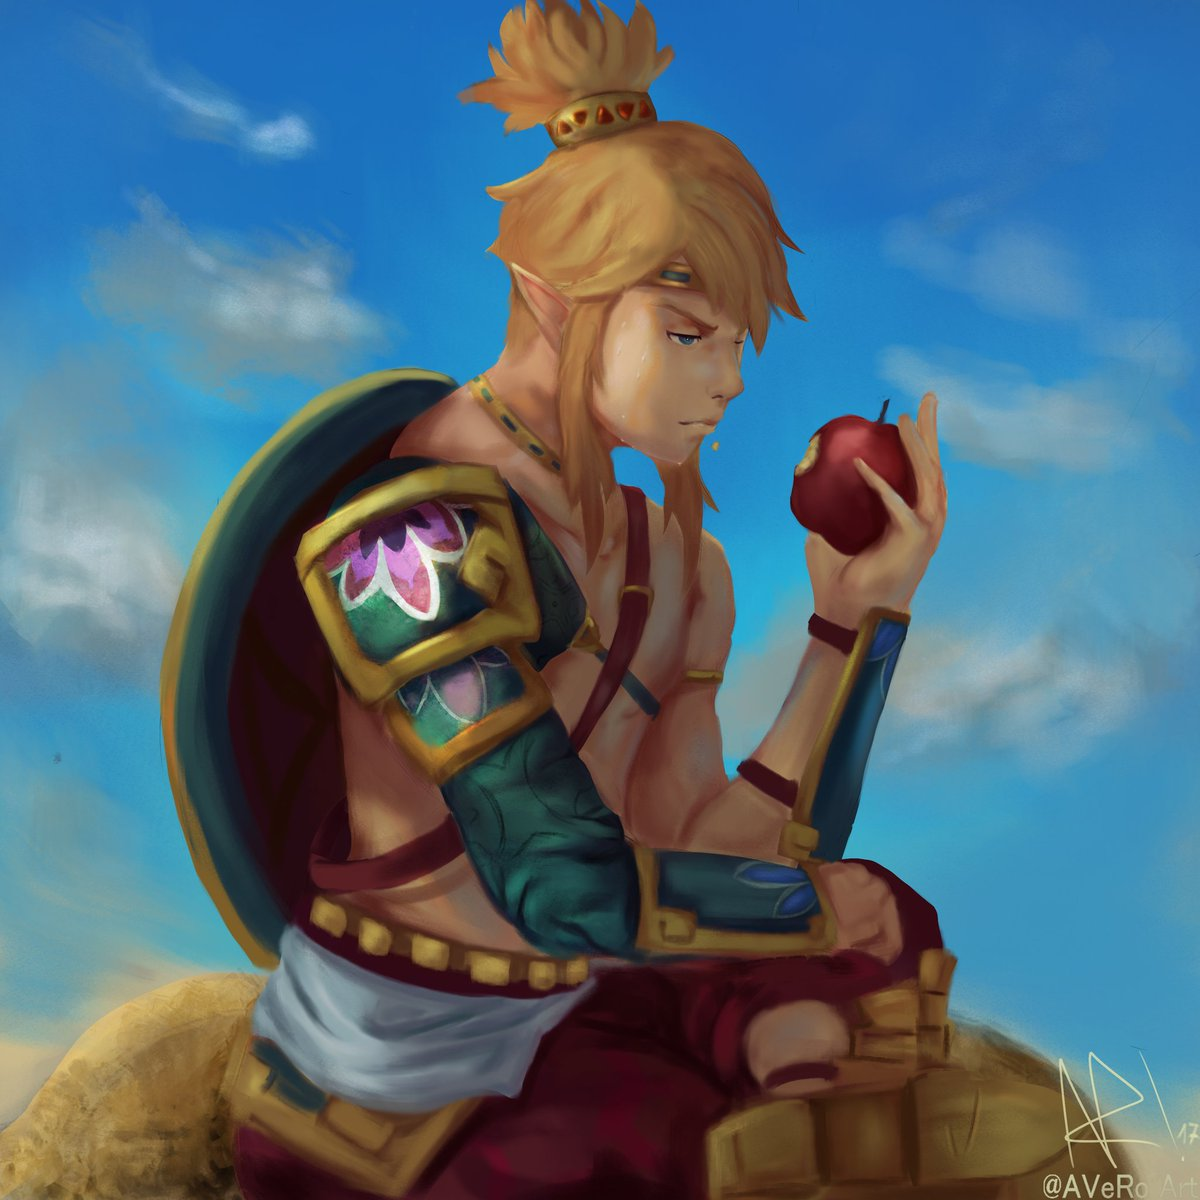 Linkfanart Hashtag On Twitter